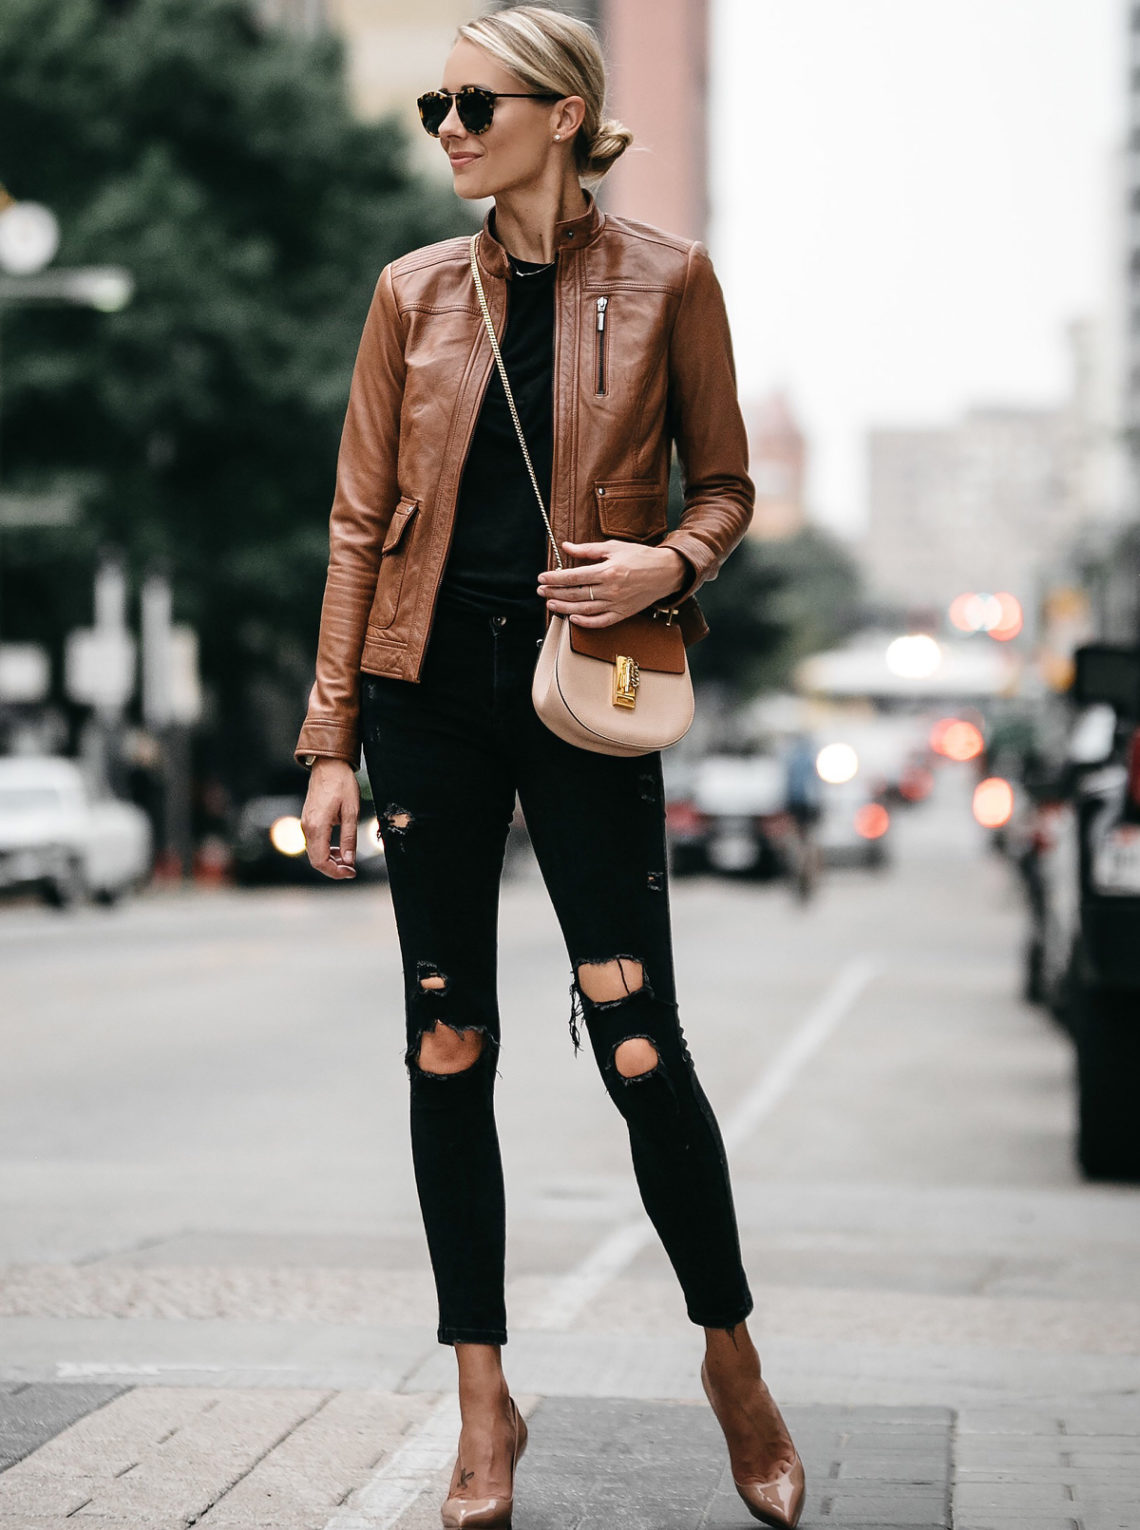 Blonde Woman Wearing Tan Leather Moto Jacket Black Ripped Skinny Jeans Outfit Chloe Drew Handbag Christian Louboutin Nude Pumps Fashion Jackson Dallas Blogger Fashion Blogger Street Style